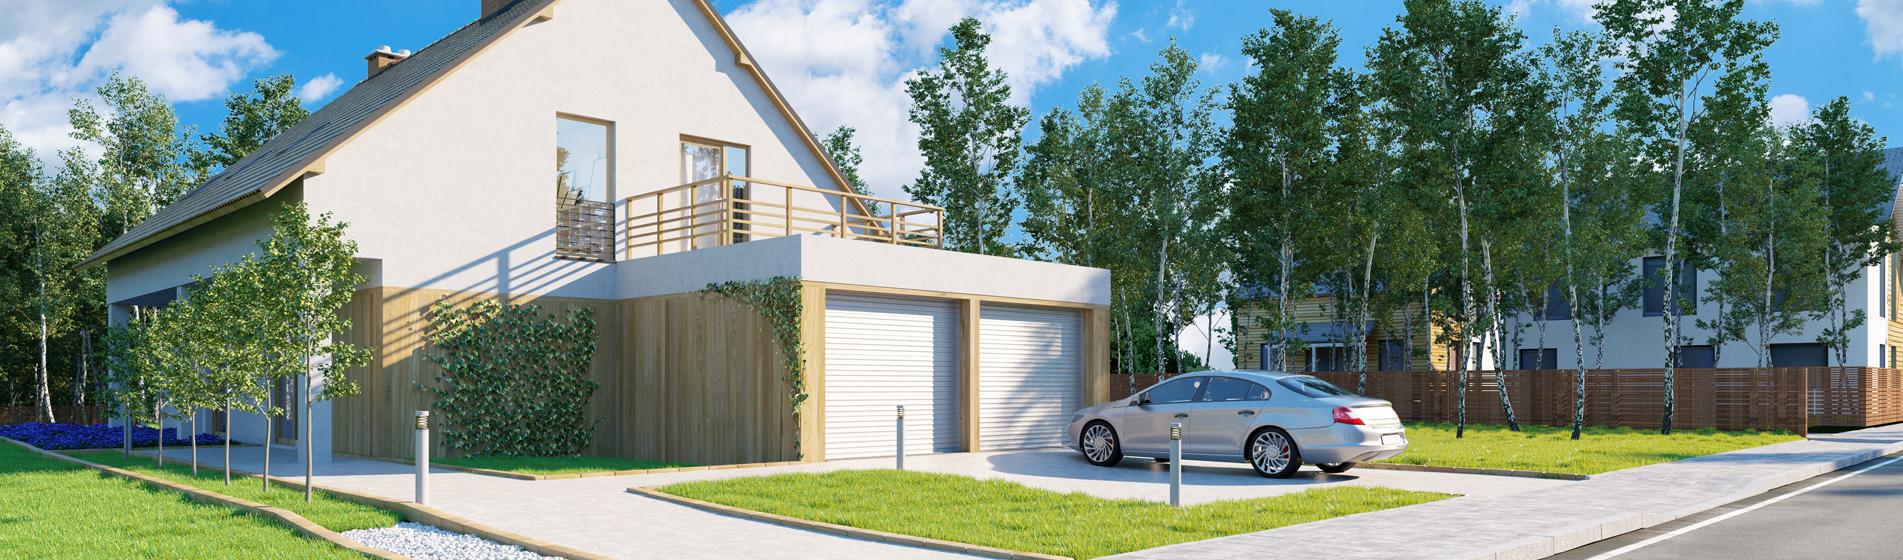 installer porte de garage sur-mesure 30 Gard